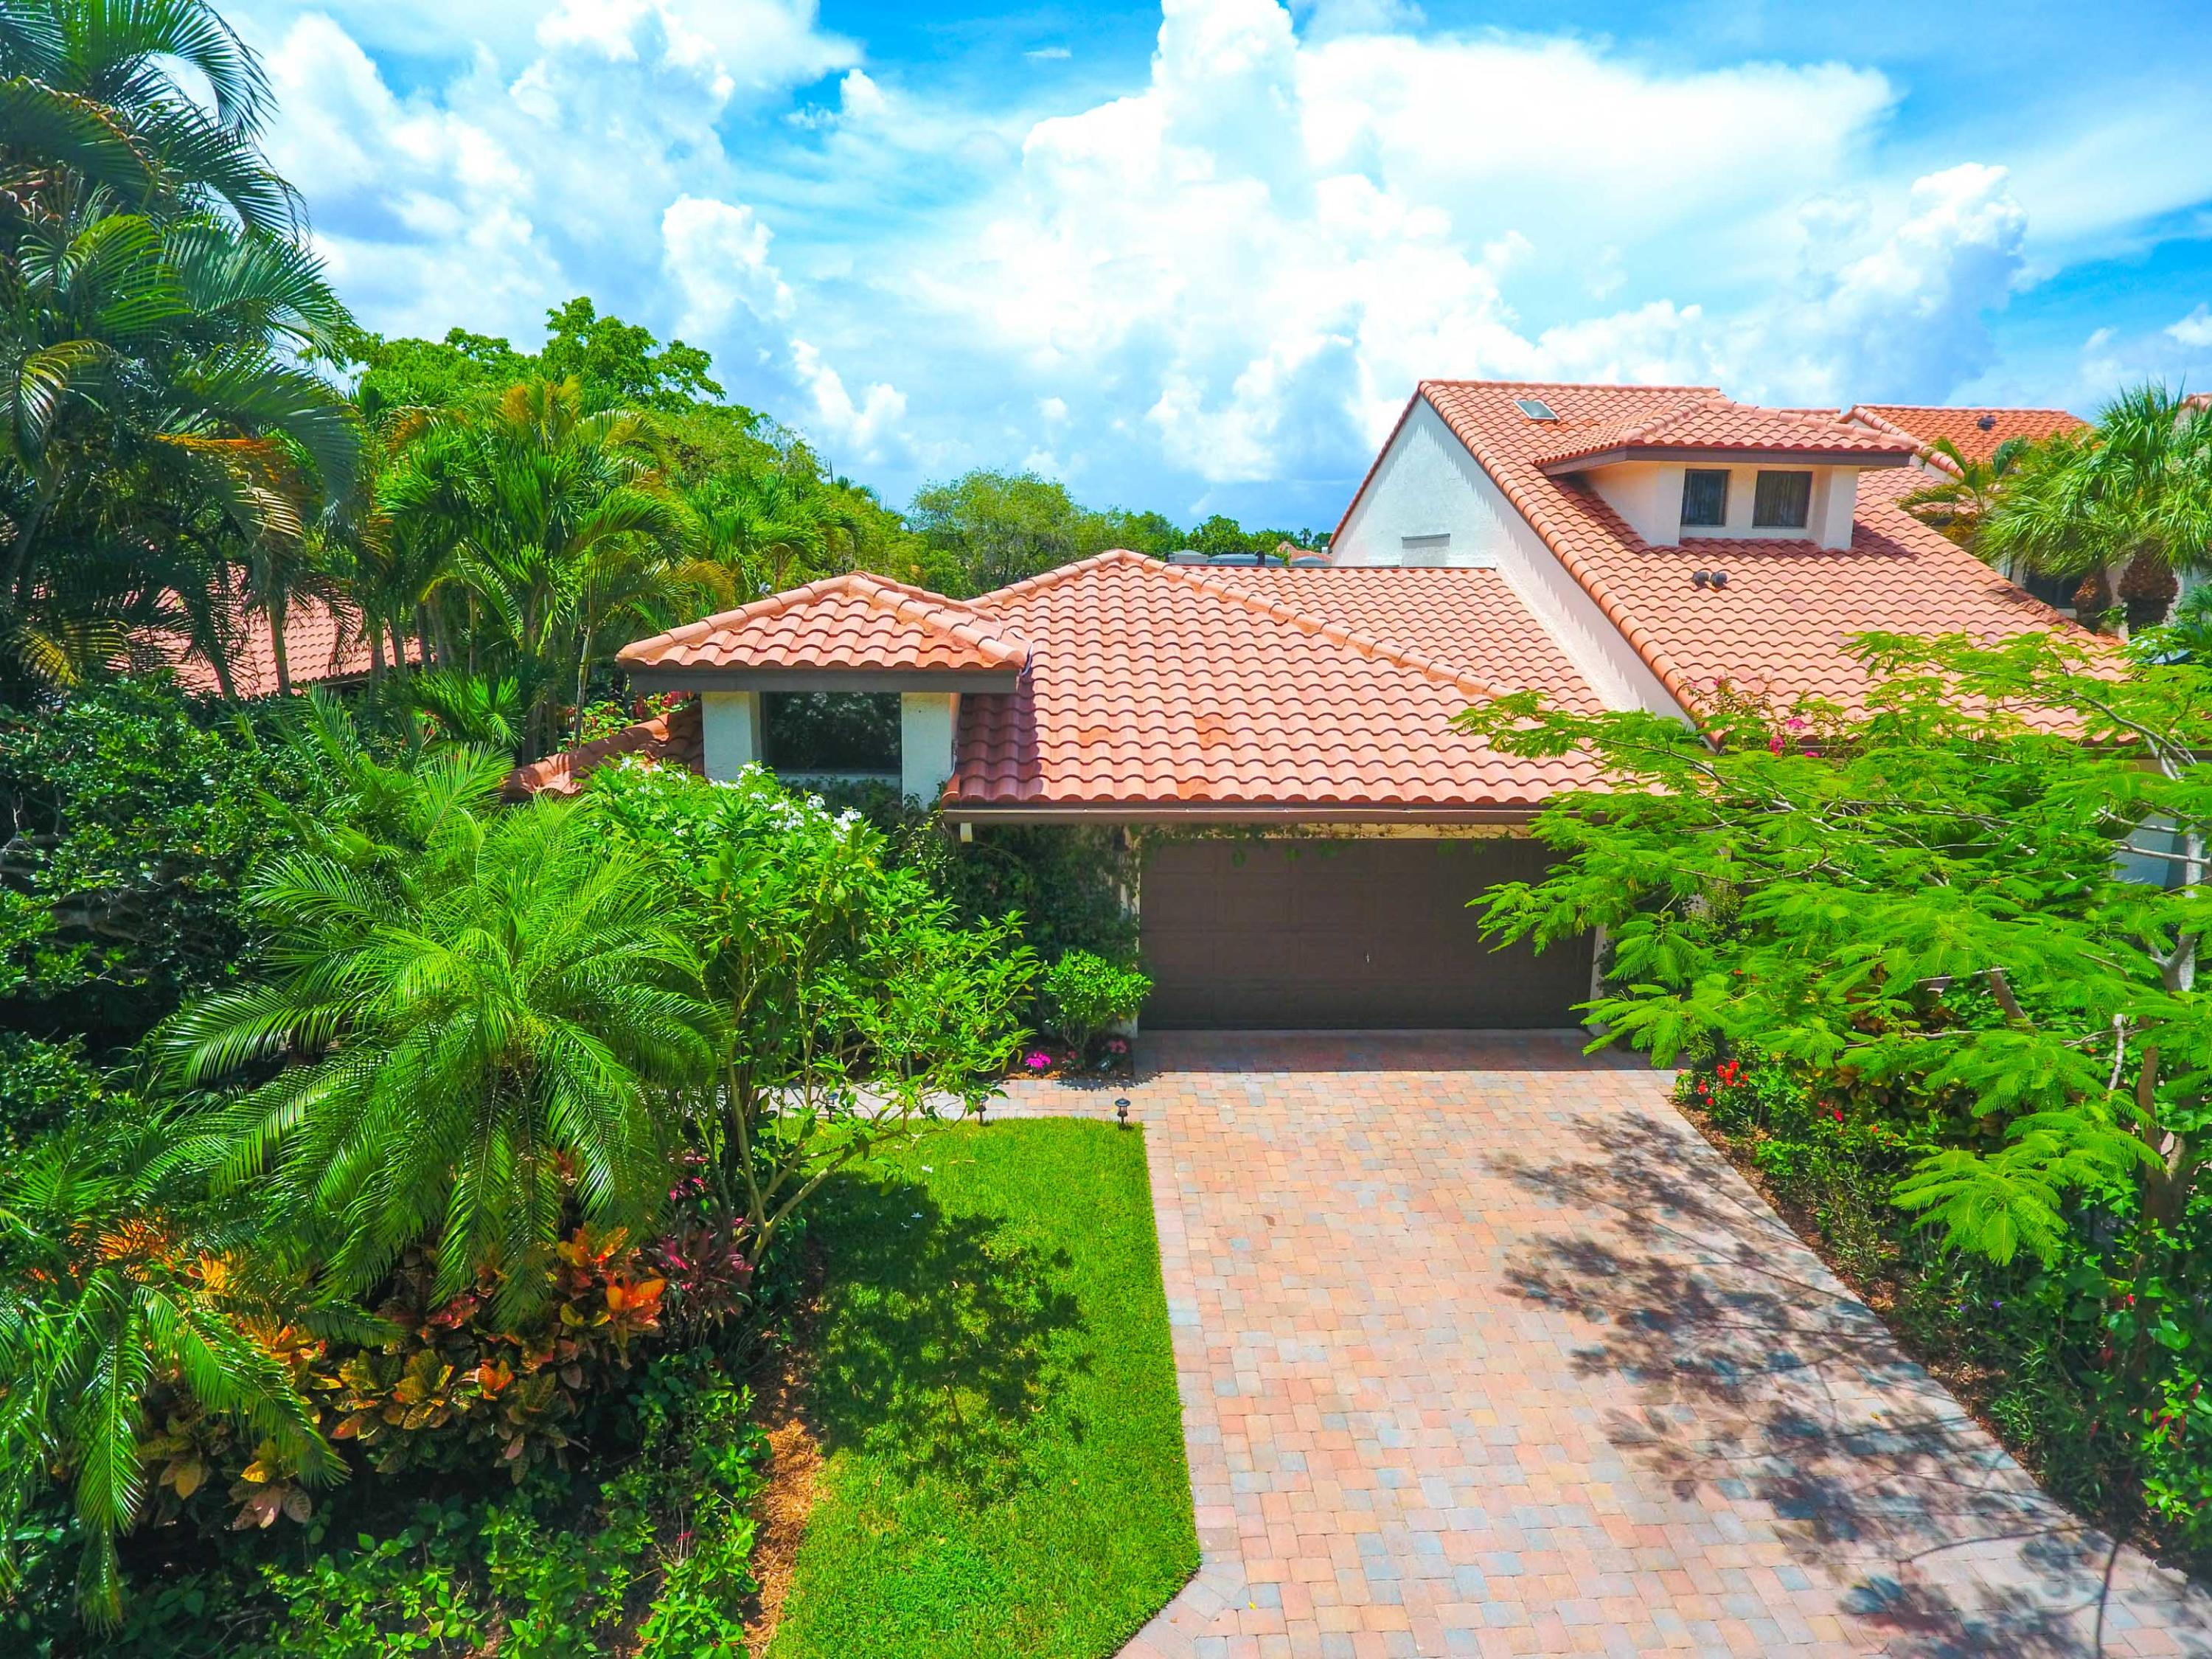 2387 Windsor Way, Wellington, Florida 33414, 3 Bedrooms Bedrooms, ,3 BathroomsBathrooms,Villa,For Rent,Palm Beach Polo and Country Club,Windsor,1,RX-10533831